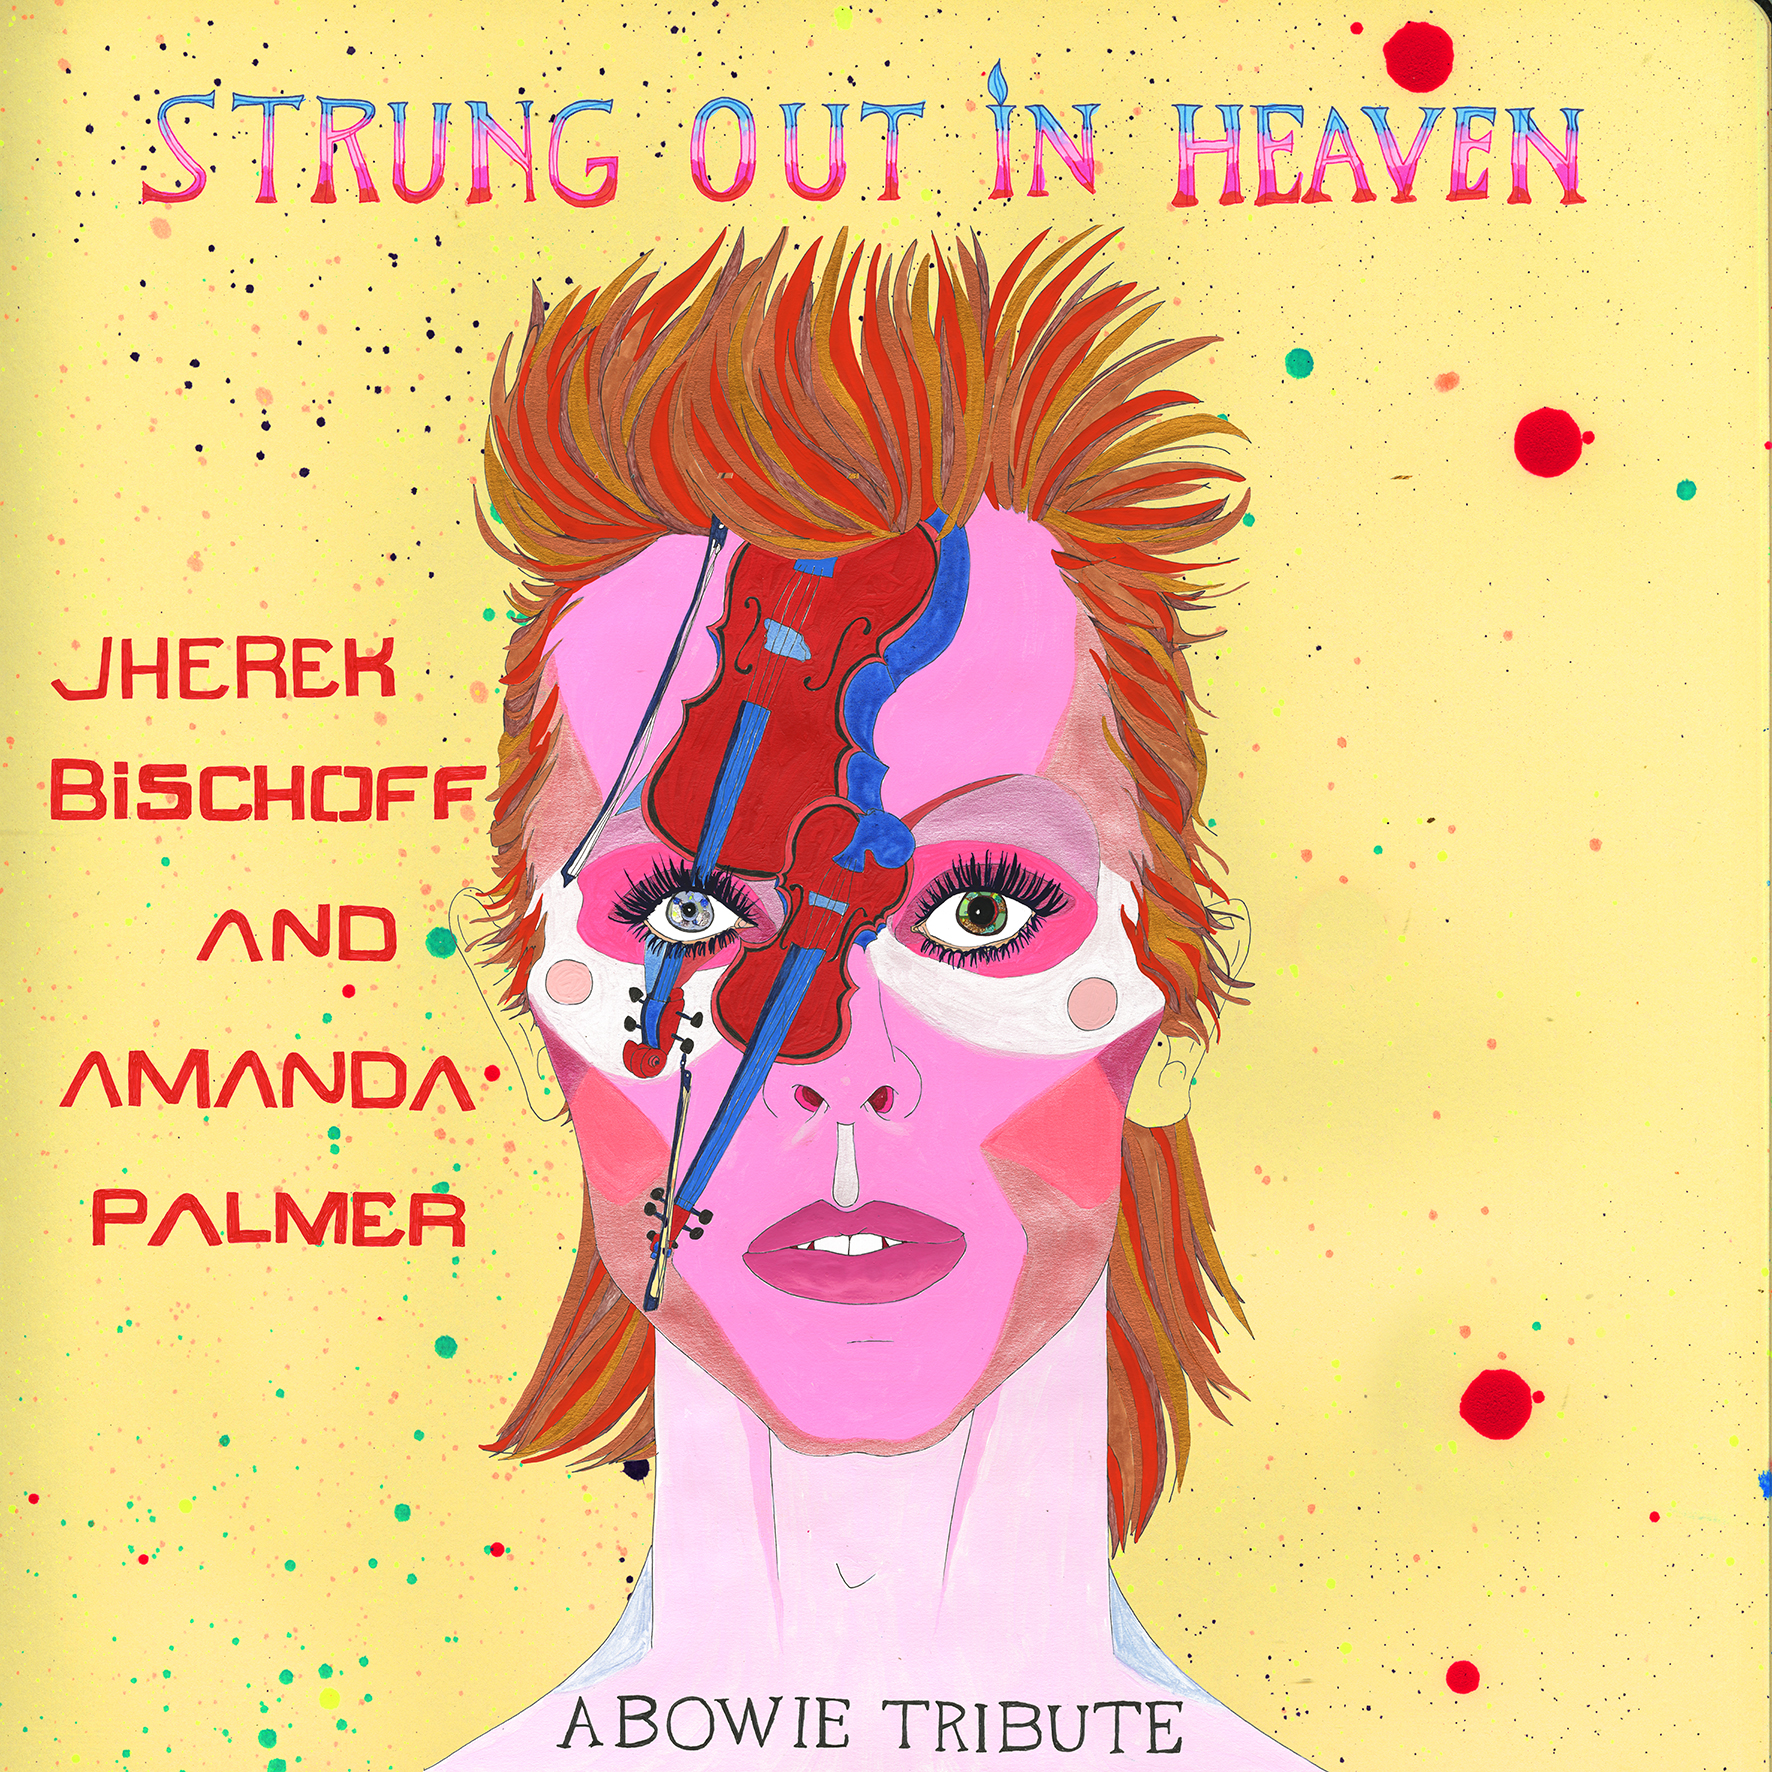 Strung Out In Heaven - A Bowie Tribute by Amanda Palmer & Jherek Bischoff